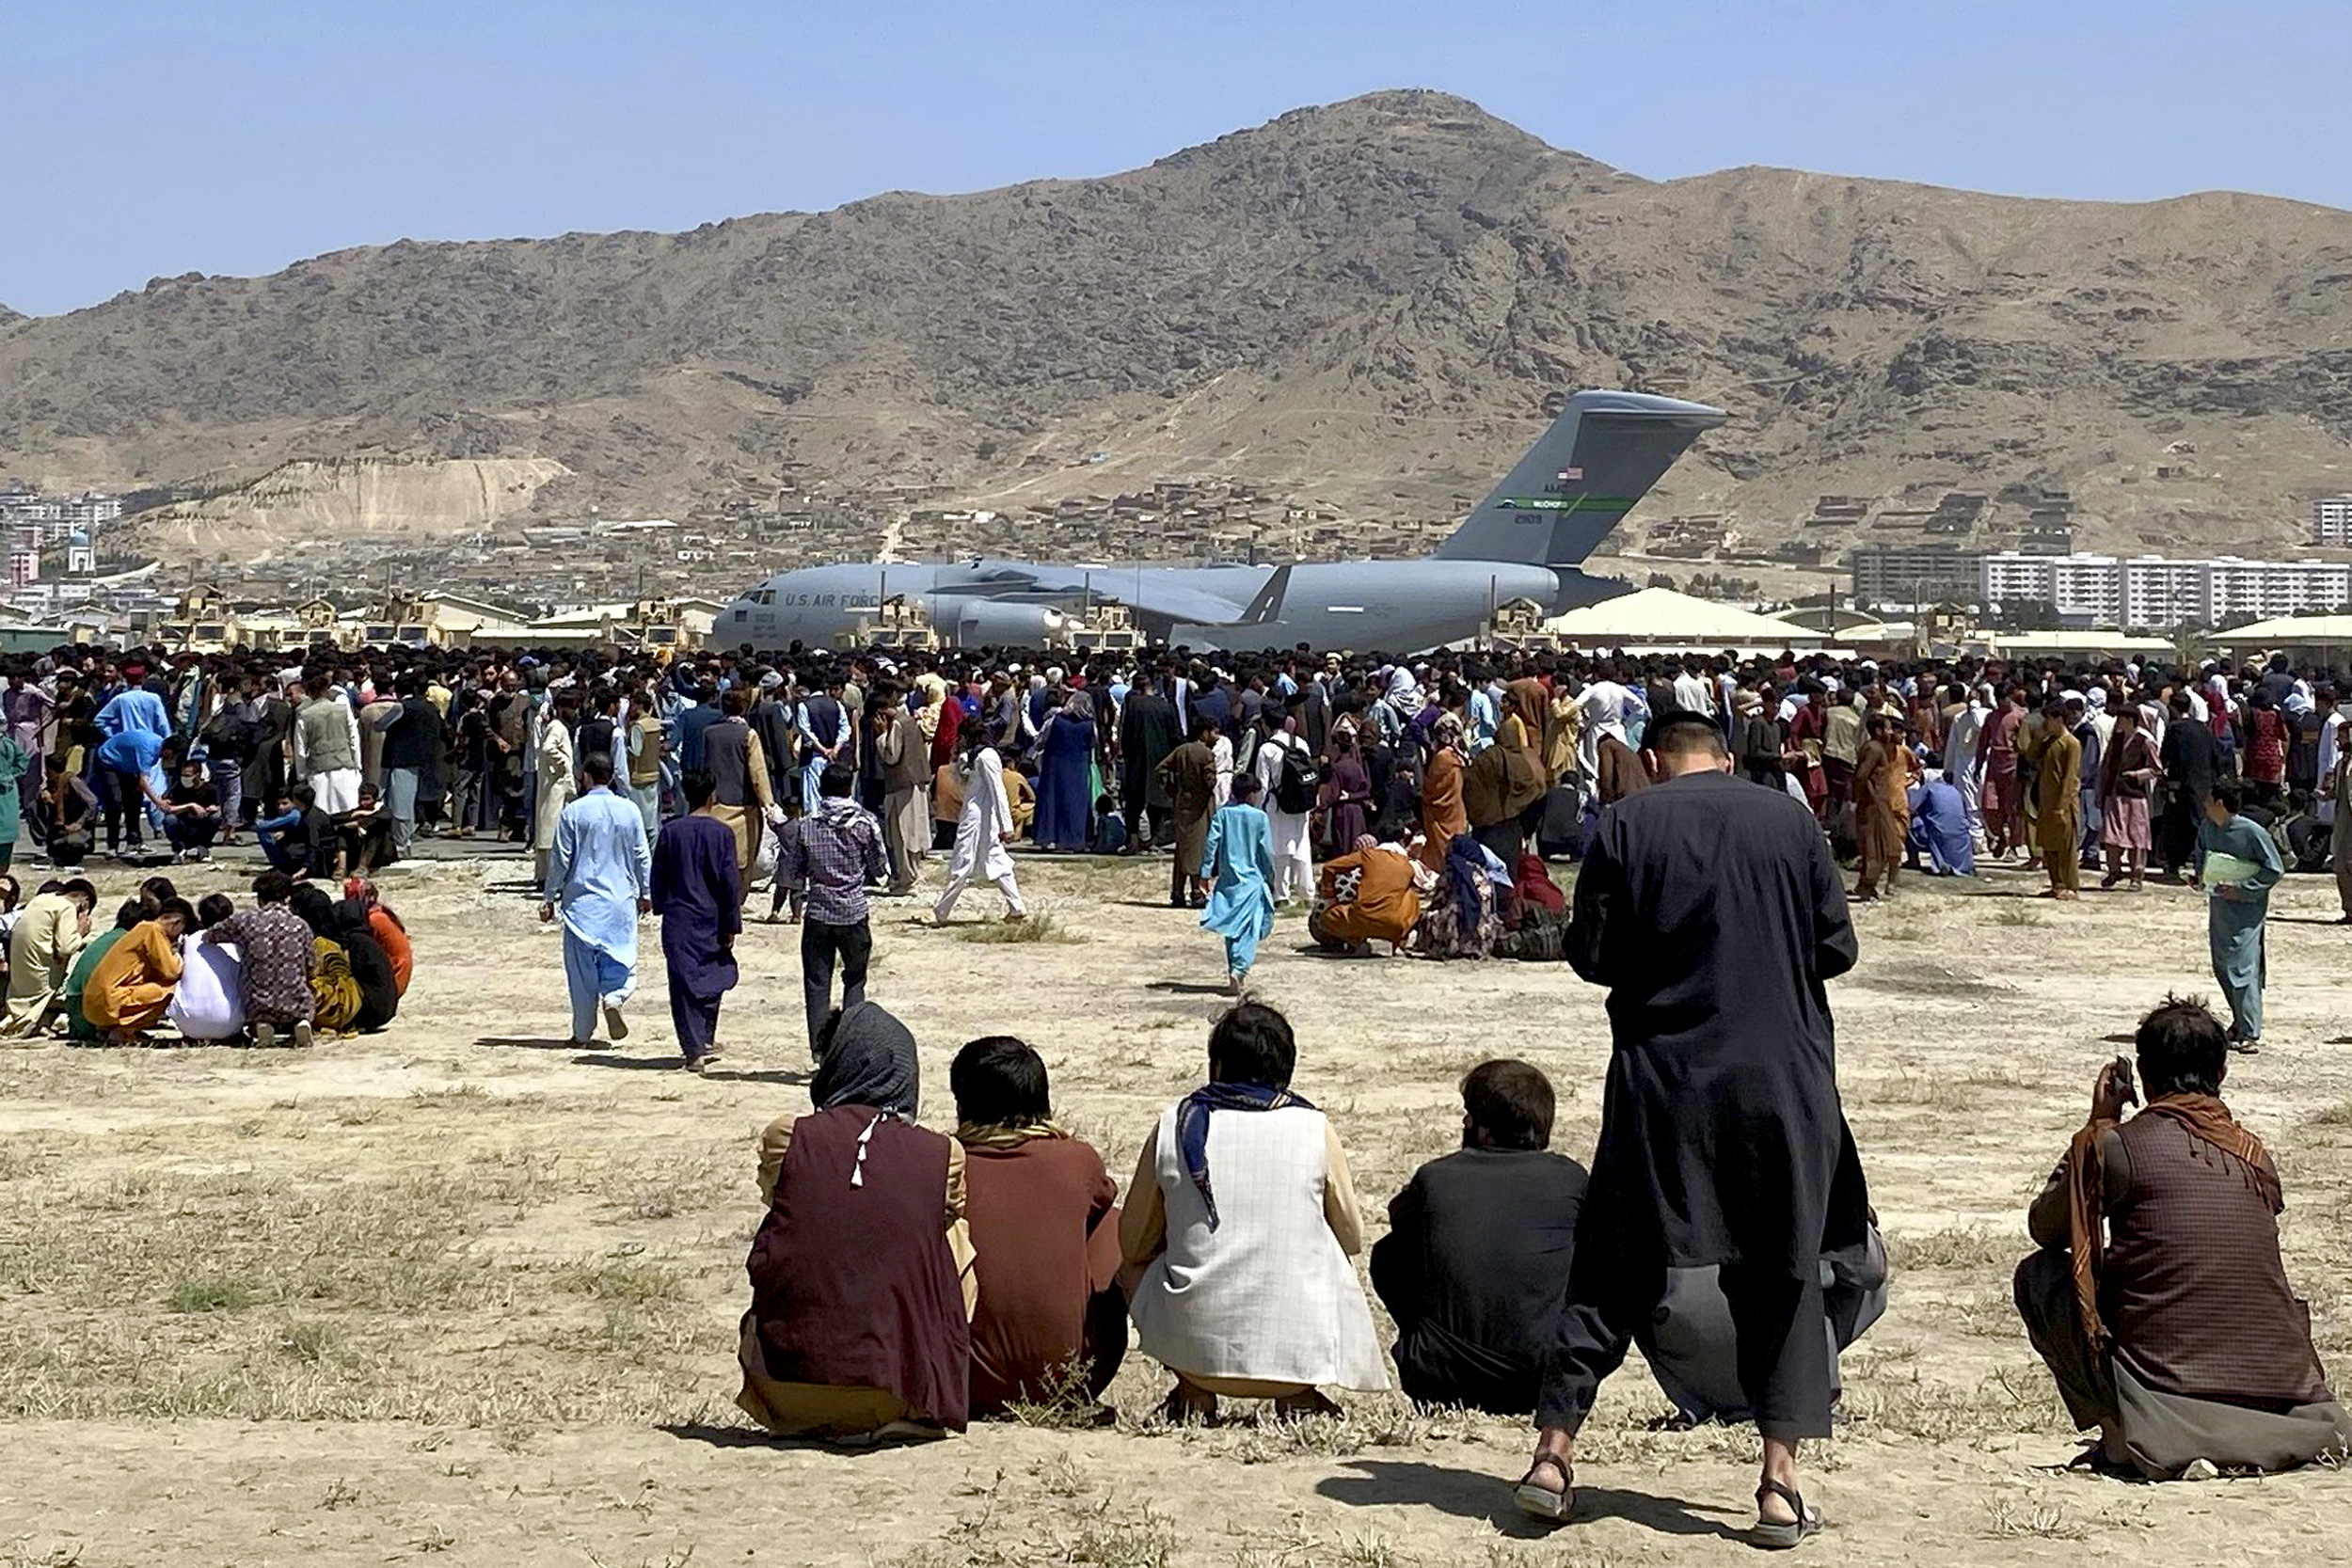 Body found in landing gear of U.S. plane people clung to as it left Kabul